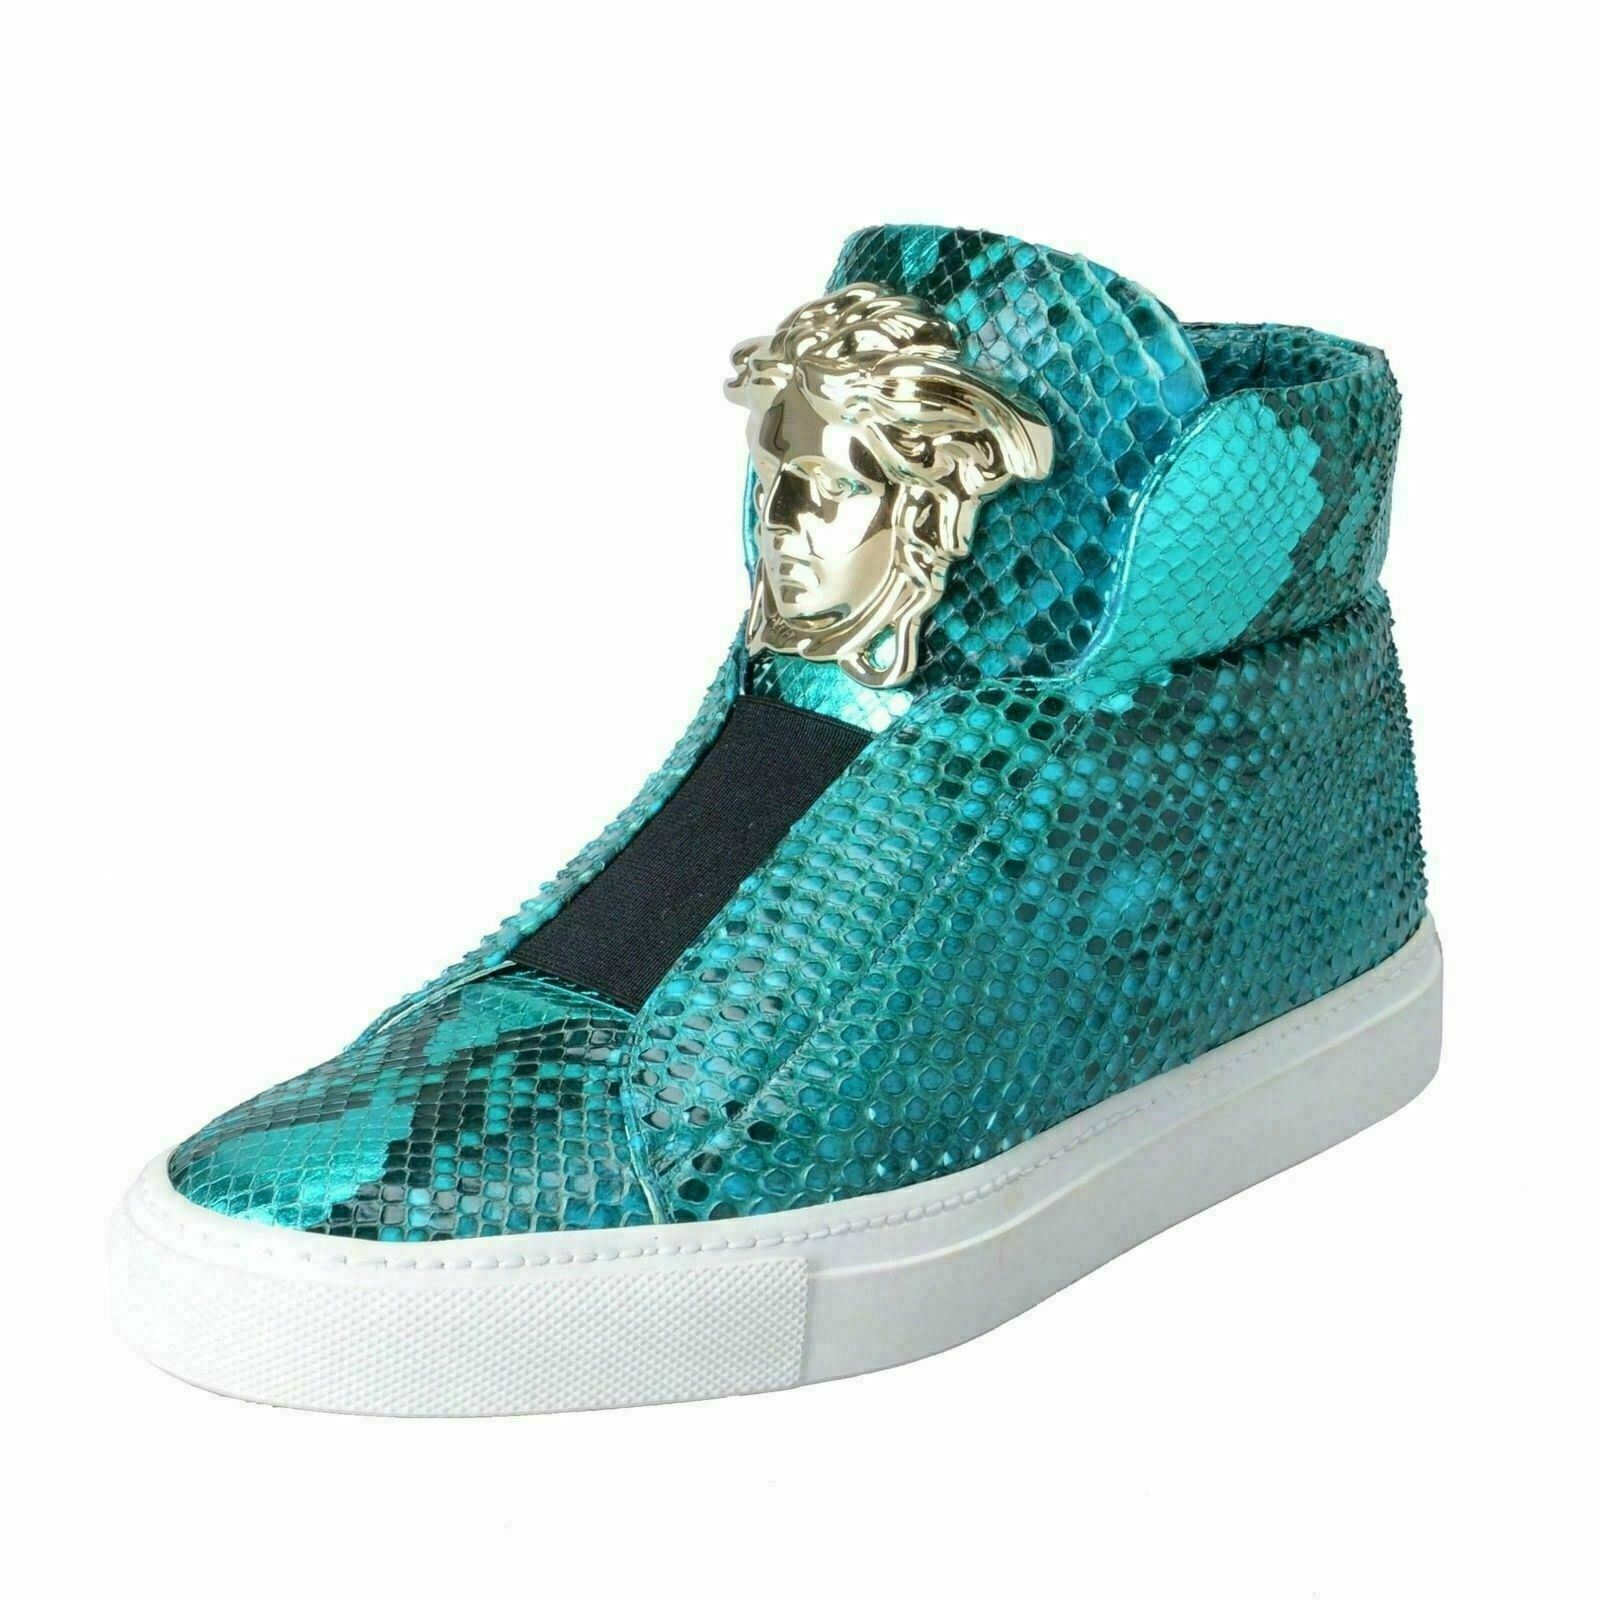 Versace Women's Turquoise Python Leather Medusa Sneakers shoes US 7 IT 37